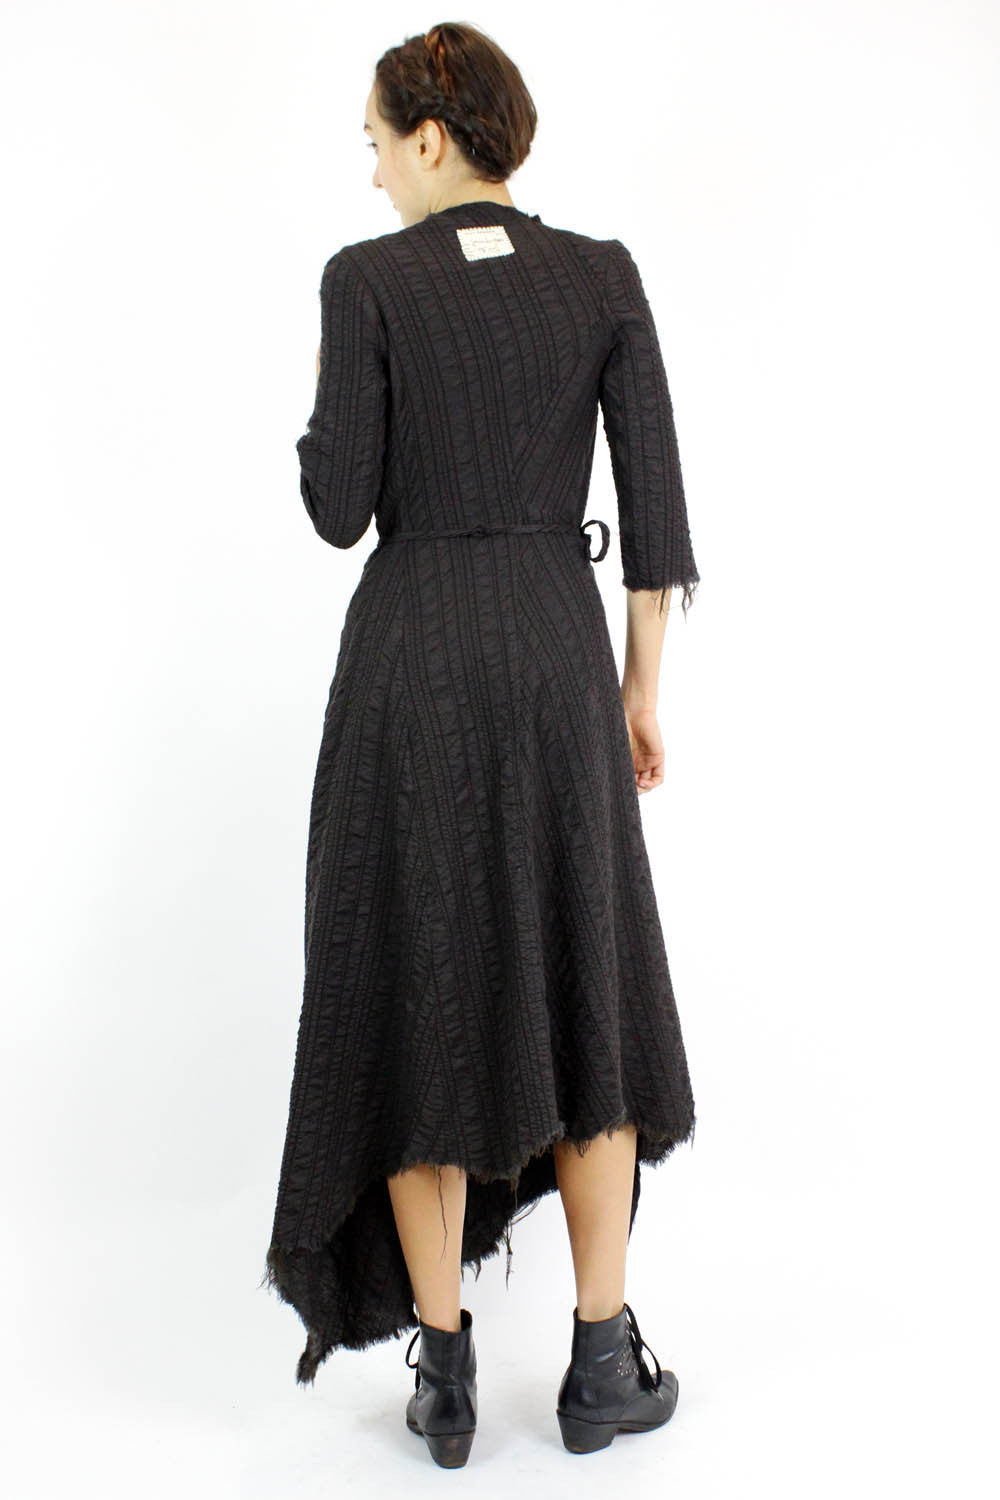 gary graham wool dress